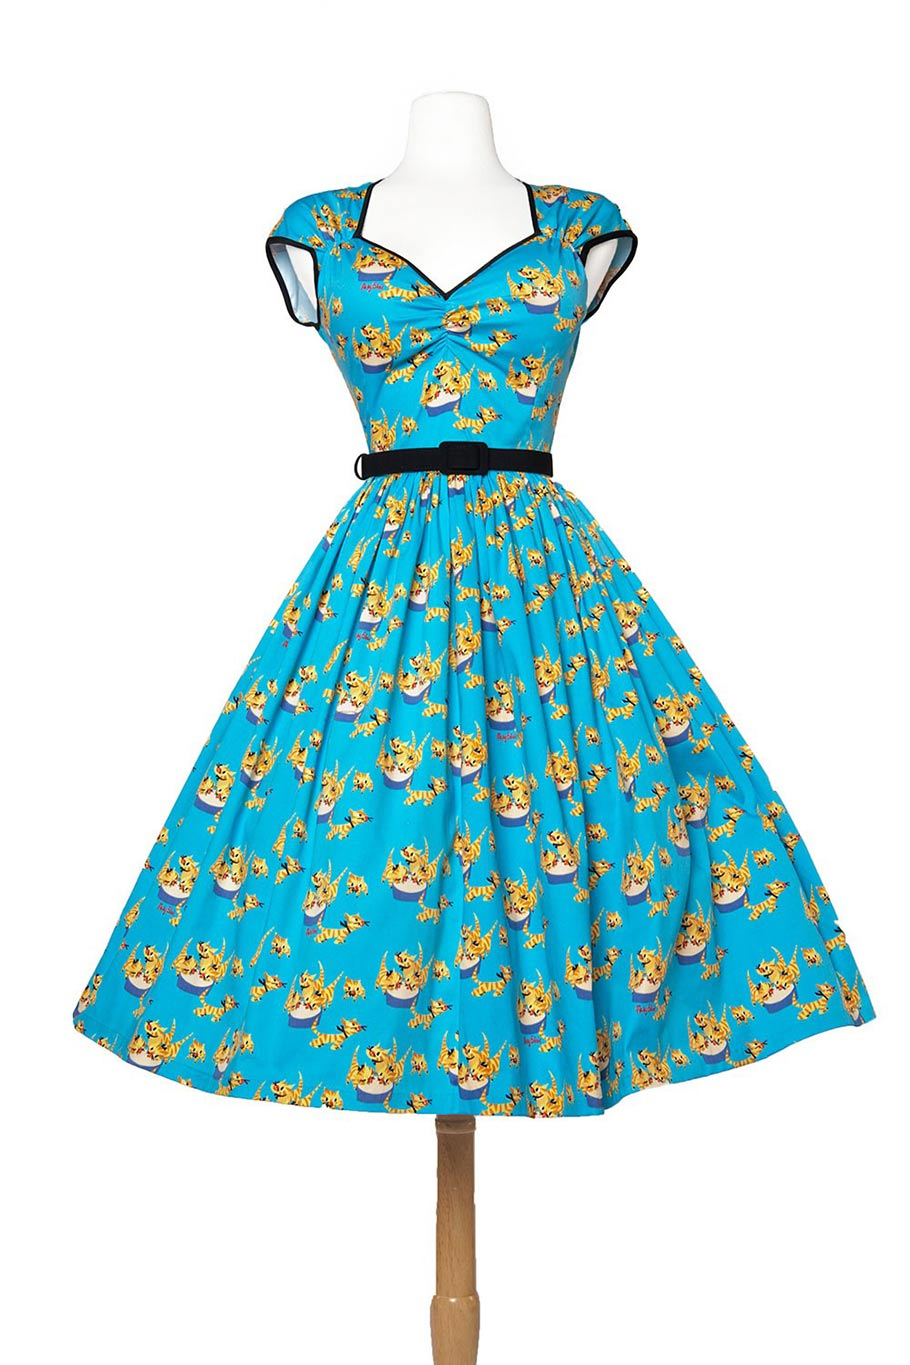 Heidi dress with gathered skirt in cat print. (Click to enlarge.)